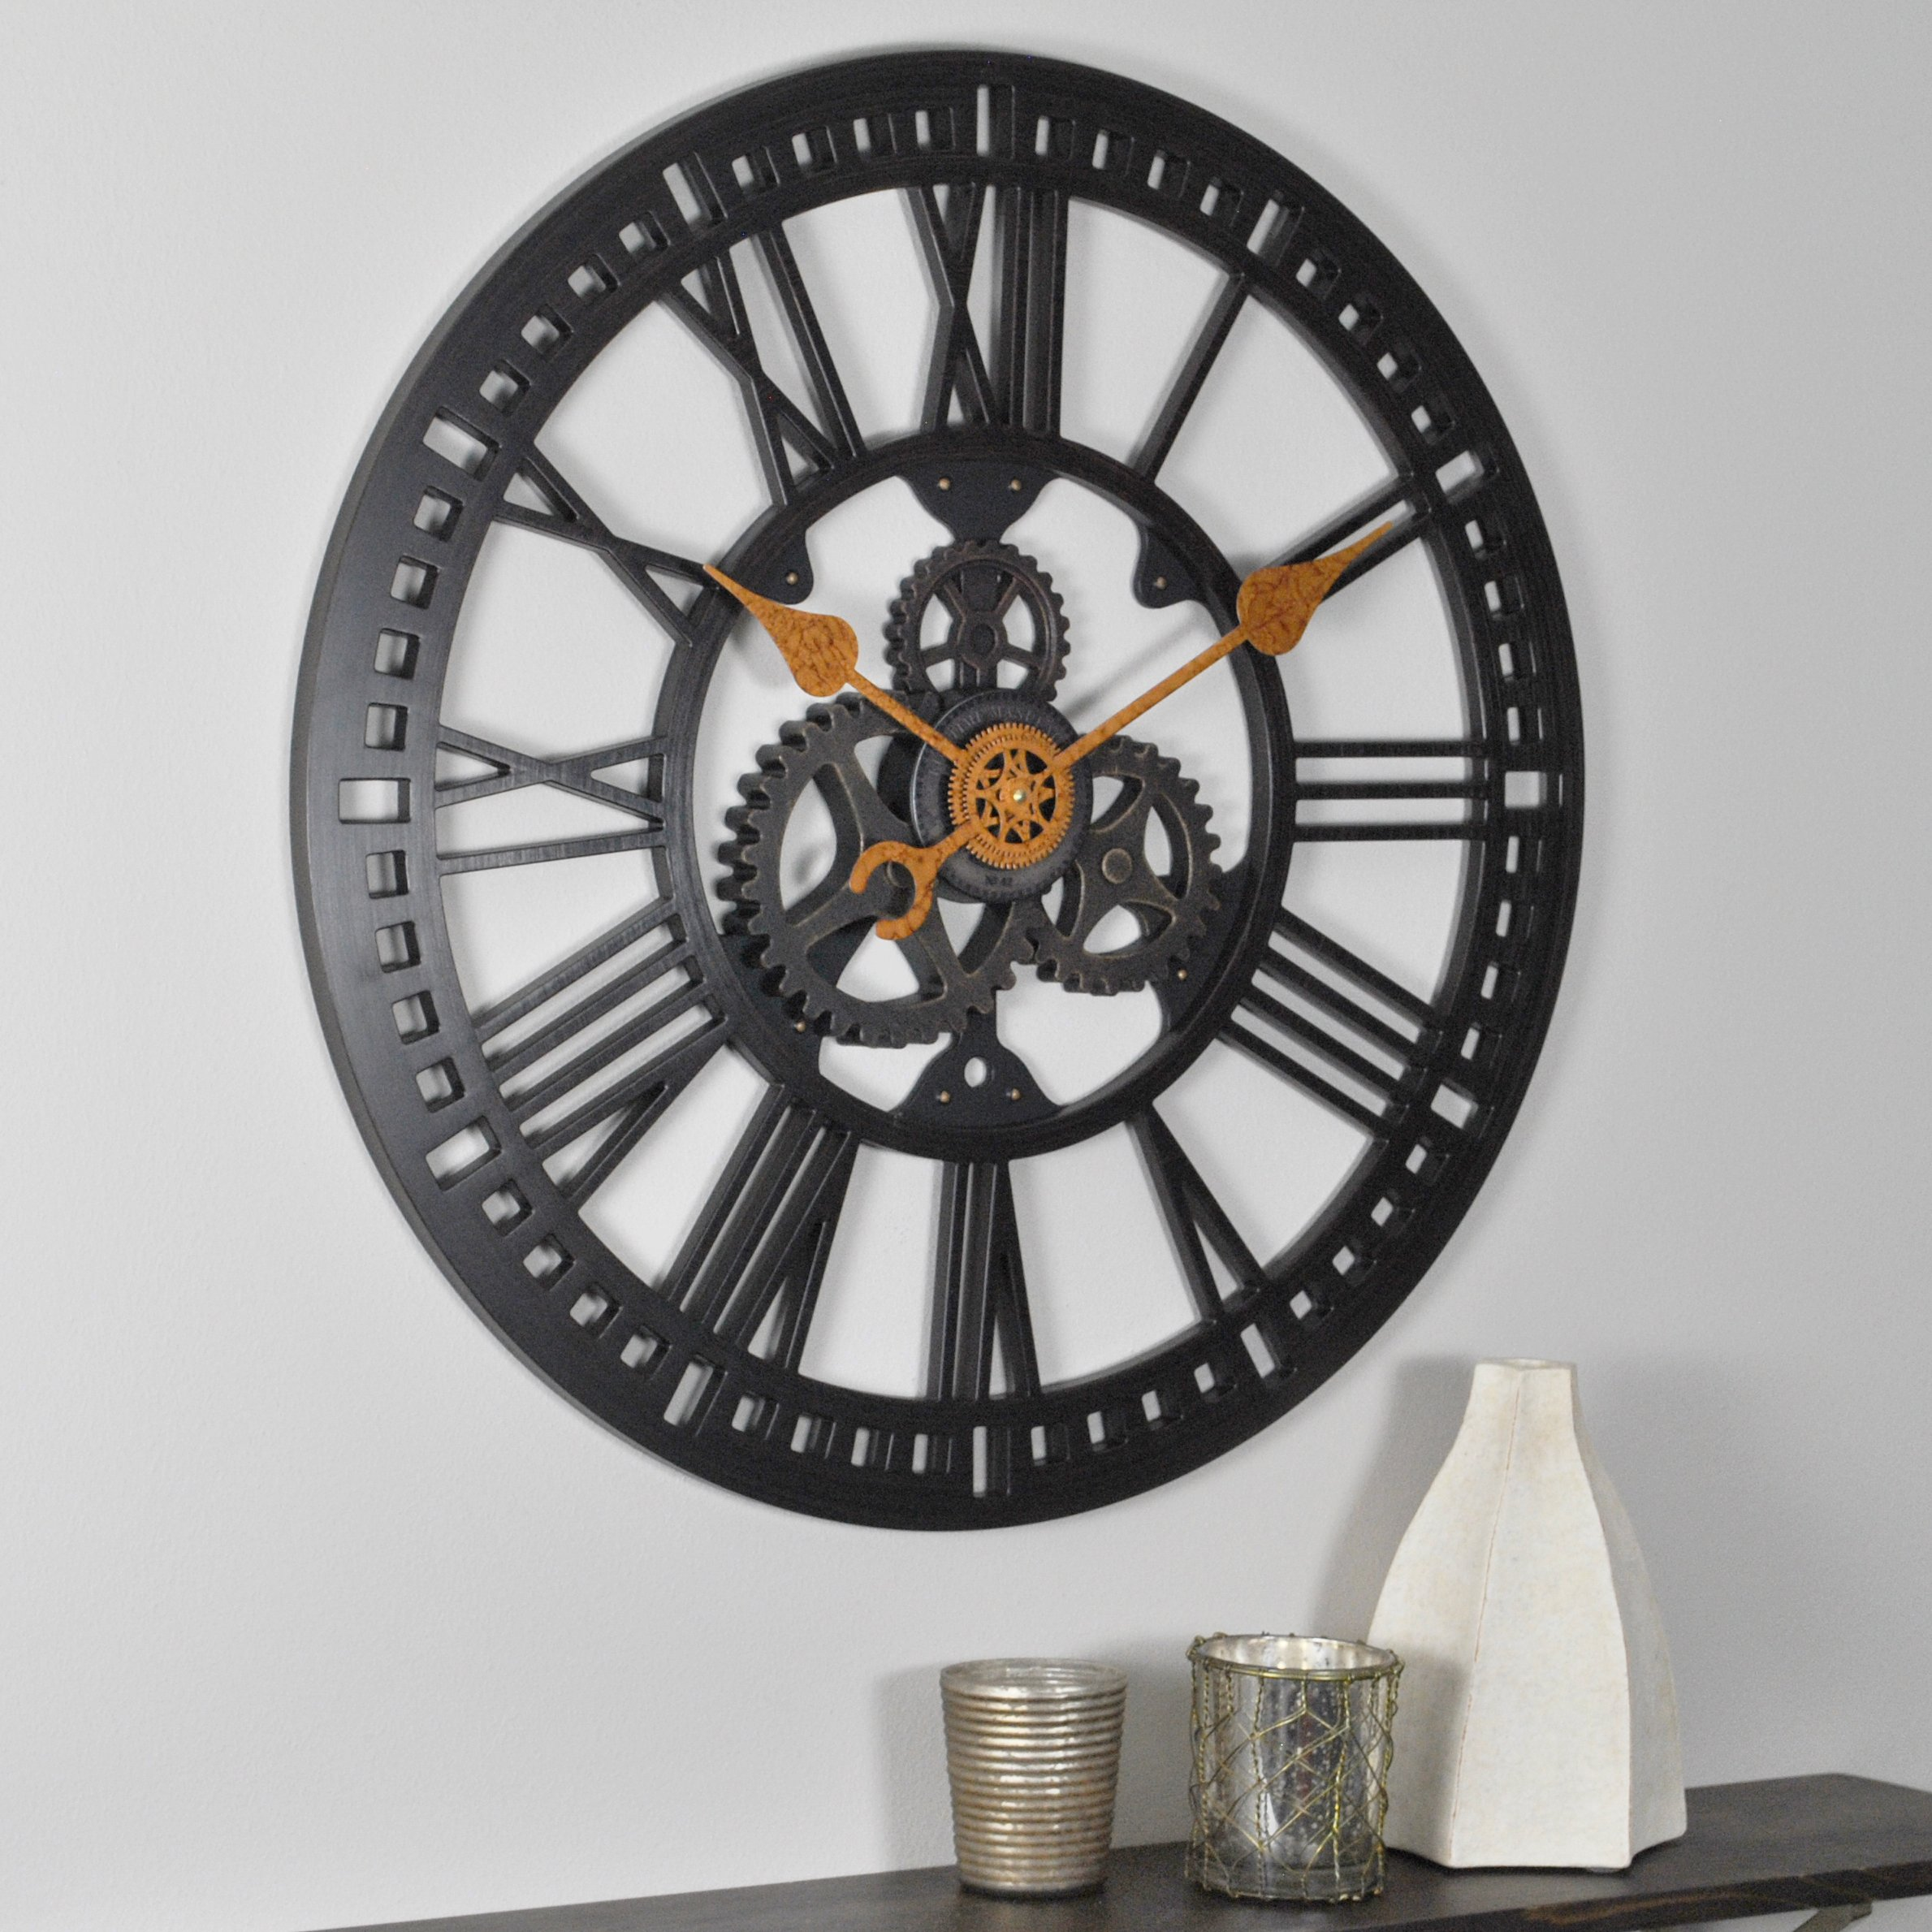 Firstime 00182 Firstime Roman Gear Wall Clock by FirsTime & Co.